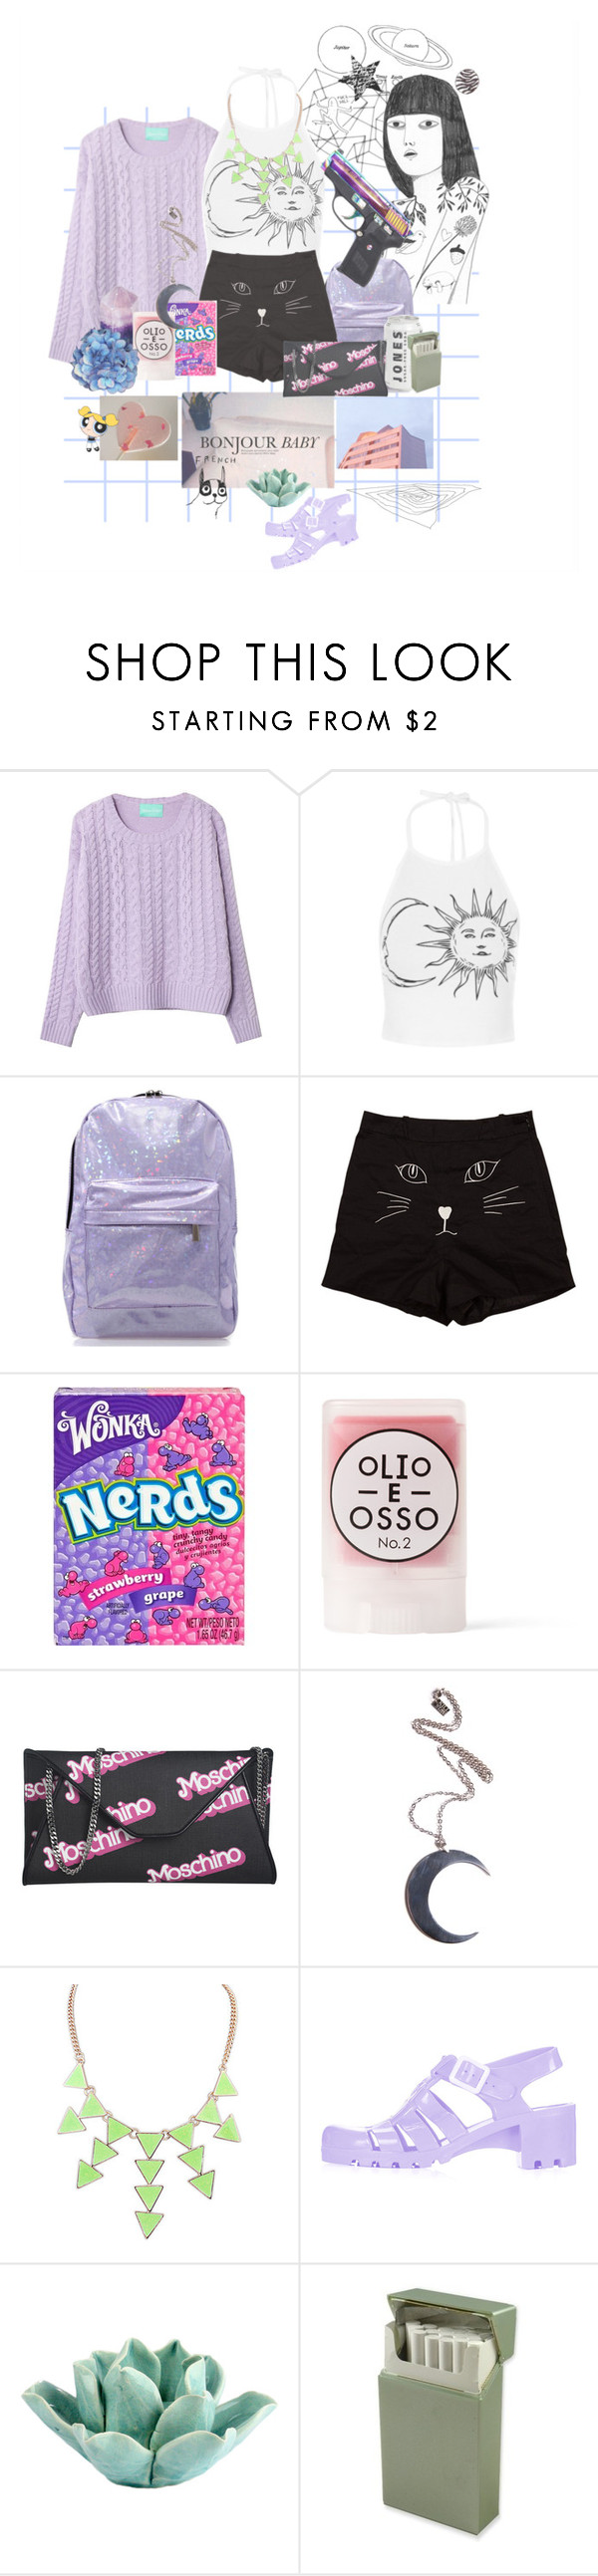 """""""Powerpuffer"""" by teodora-teddy ❤ liked on Polyvore featuring Chicnova Fashion, River Island, Olio E Osso, Moschino, Kill Star, Topshop, HomArt and House by John Lewis"""